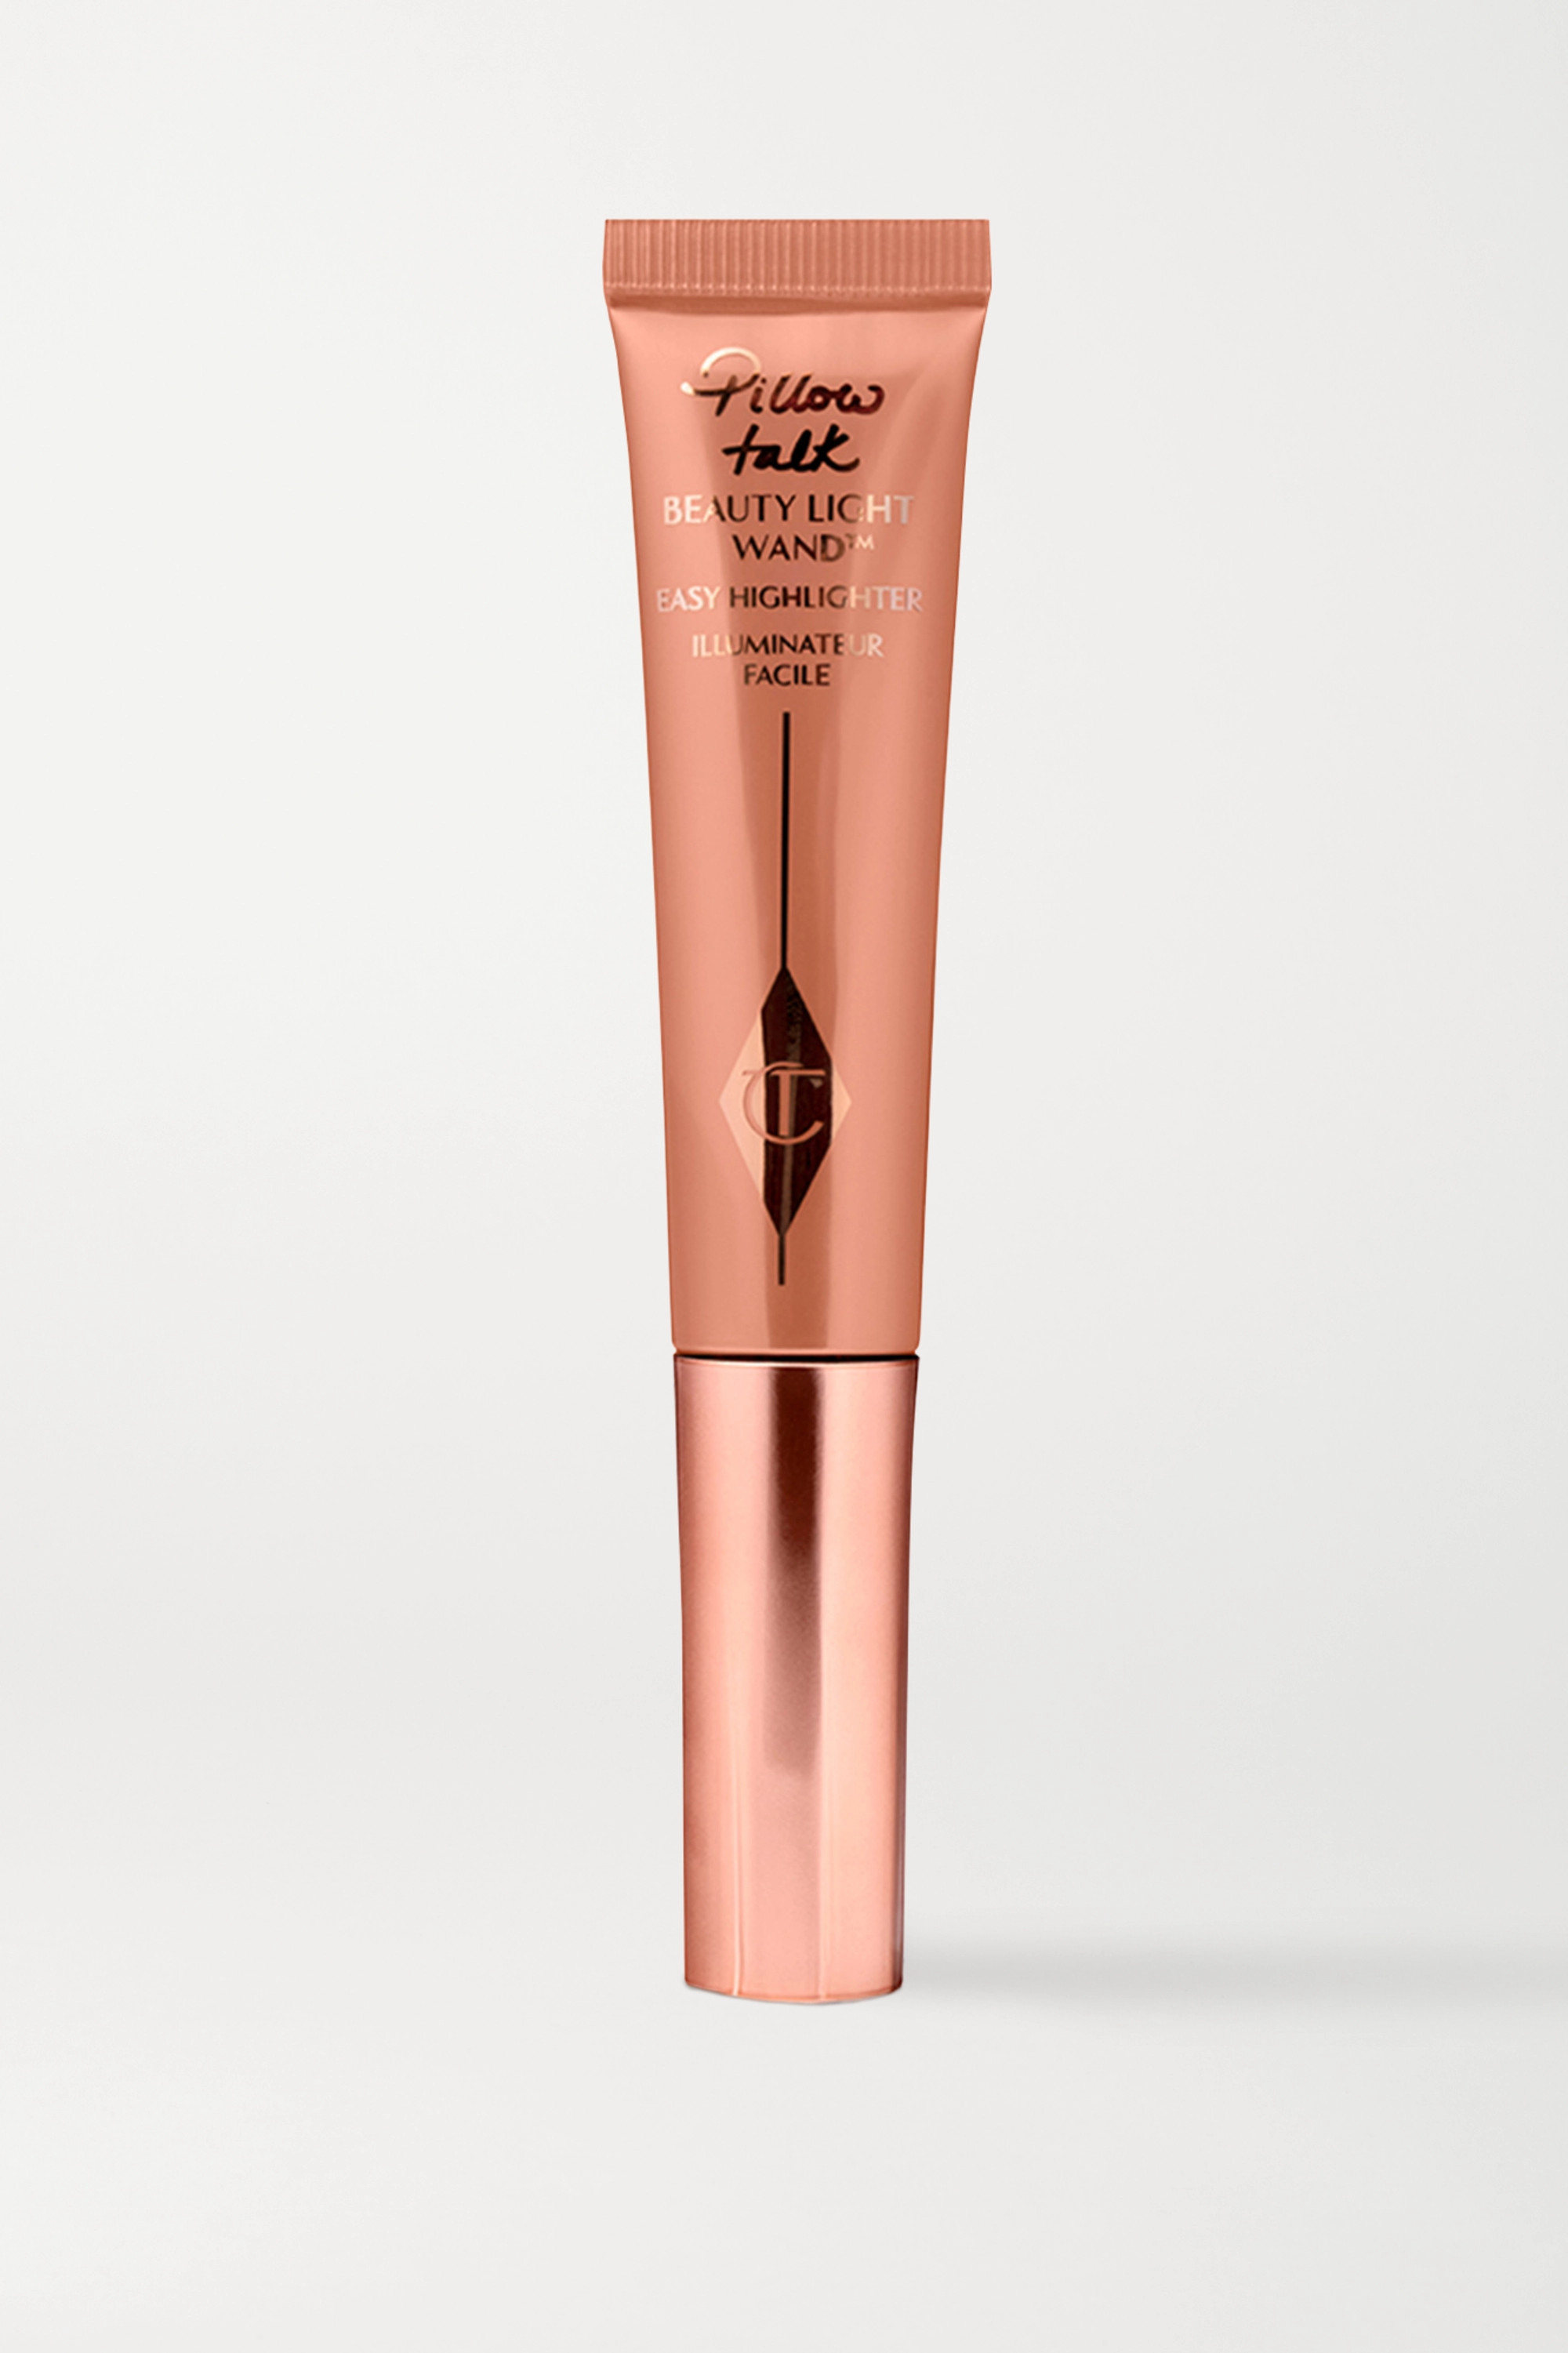 Charlotte Tilbury Beauty Light Wand - Pillow Talk Medium